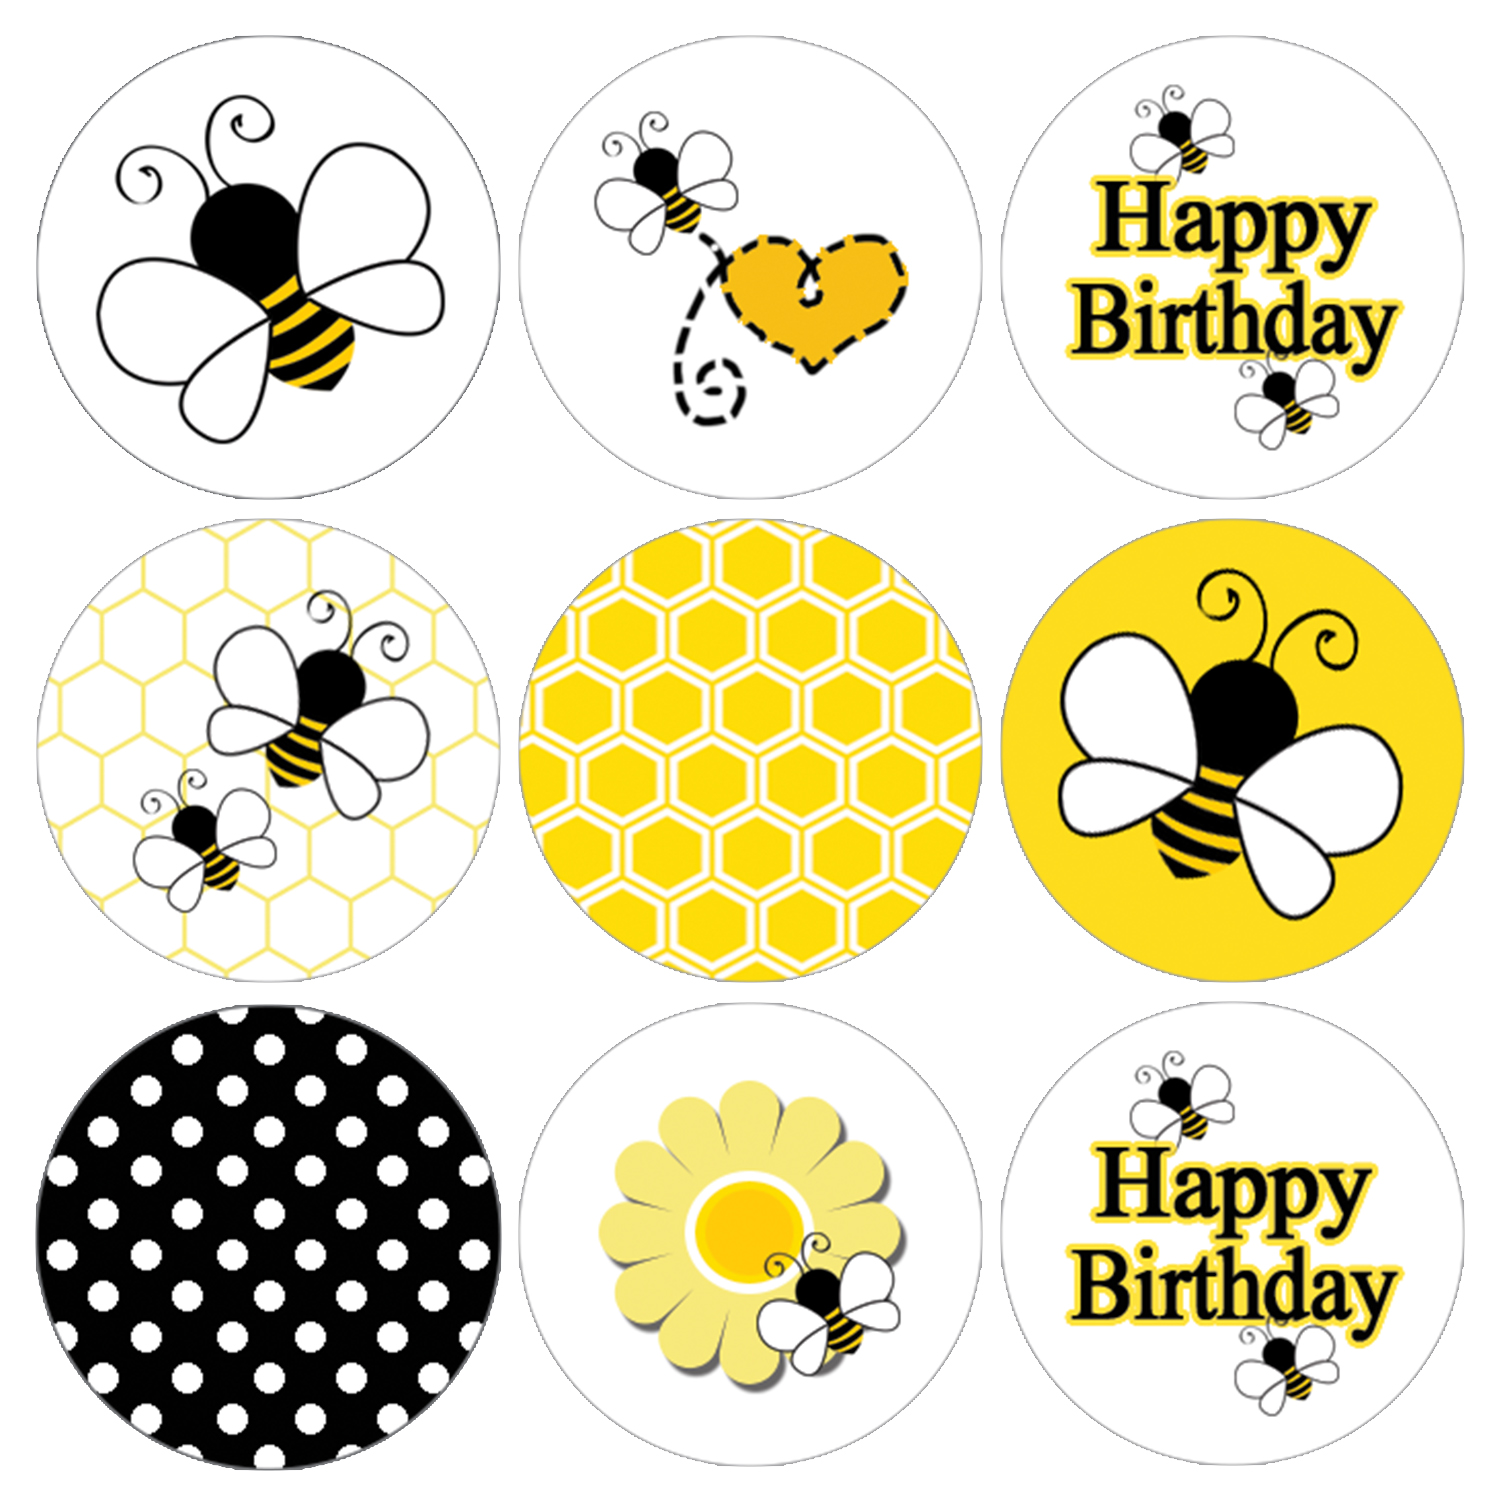 Bee Birthday Party Favor Stickers, 216ct - Bumble Bee Party Theme Decorations Supplies Bee Birthday Candy Favors - 216 Count Stickers